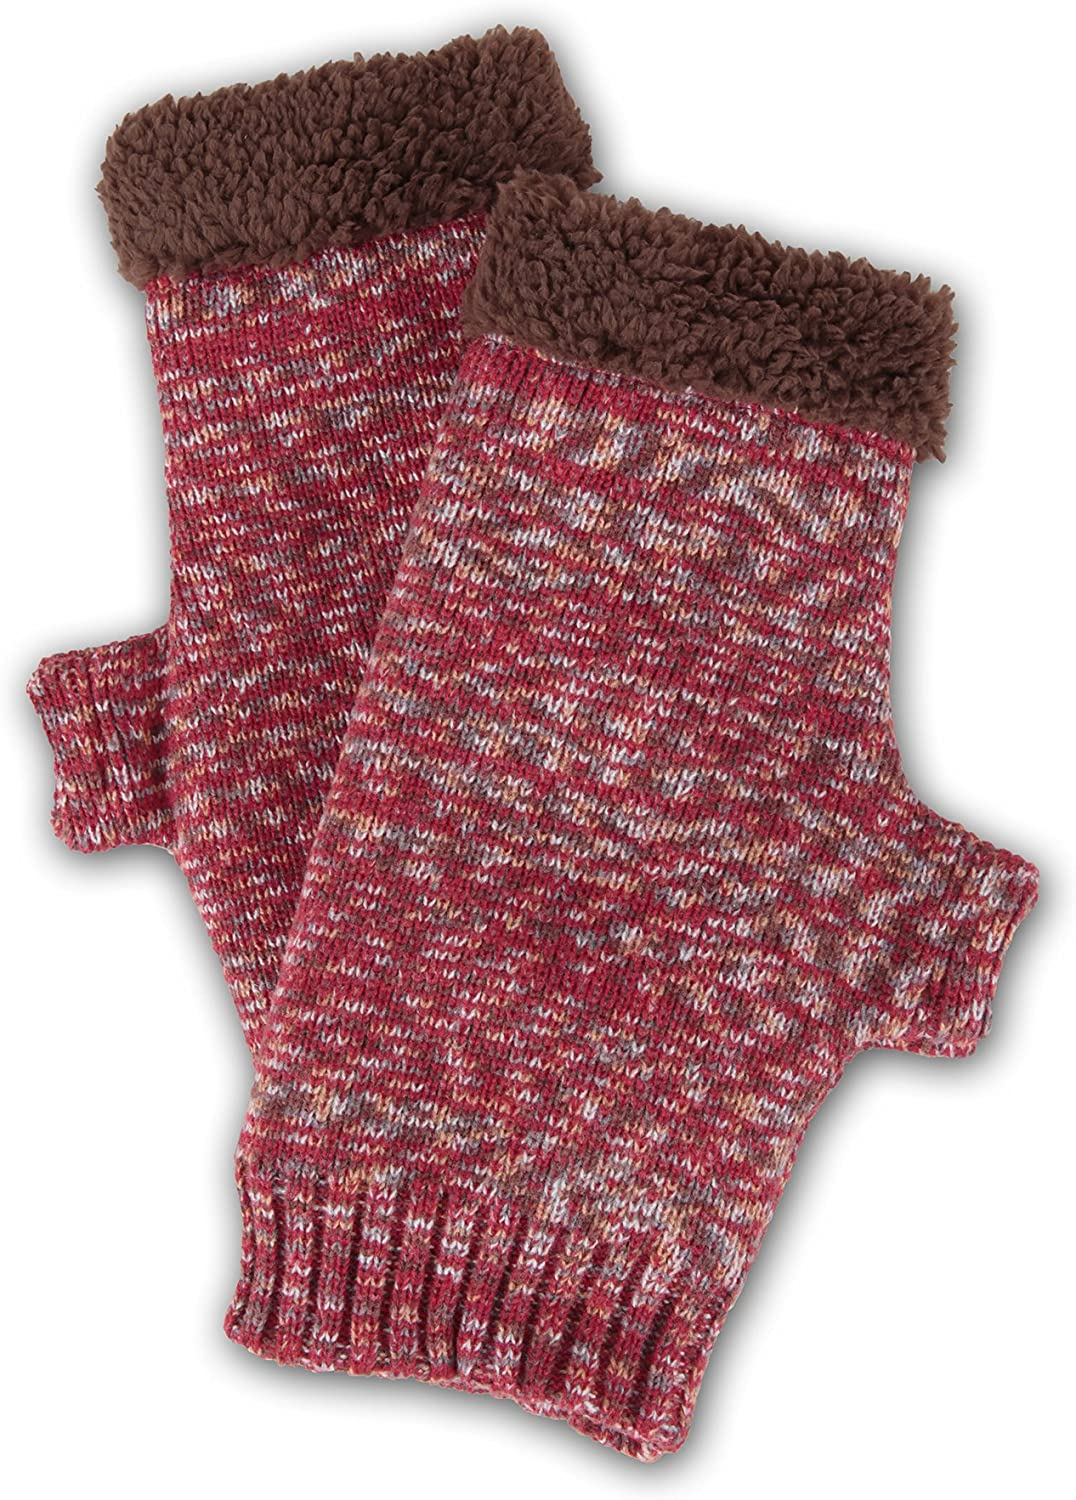 World's Softest Women's Weekend Collection Ragg Knit Fingerless Gloves One Size Fits Most (Winter)